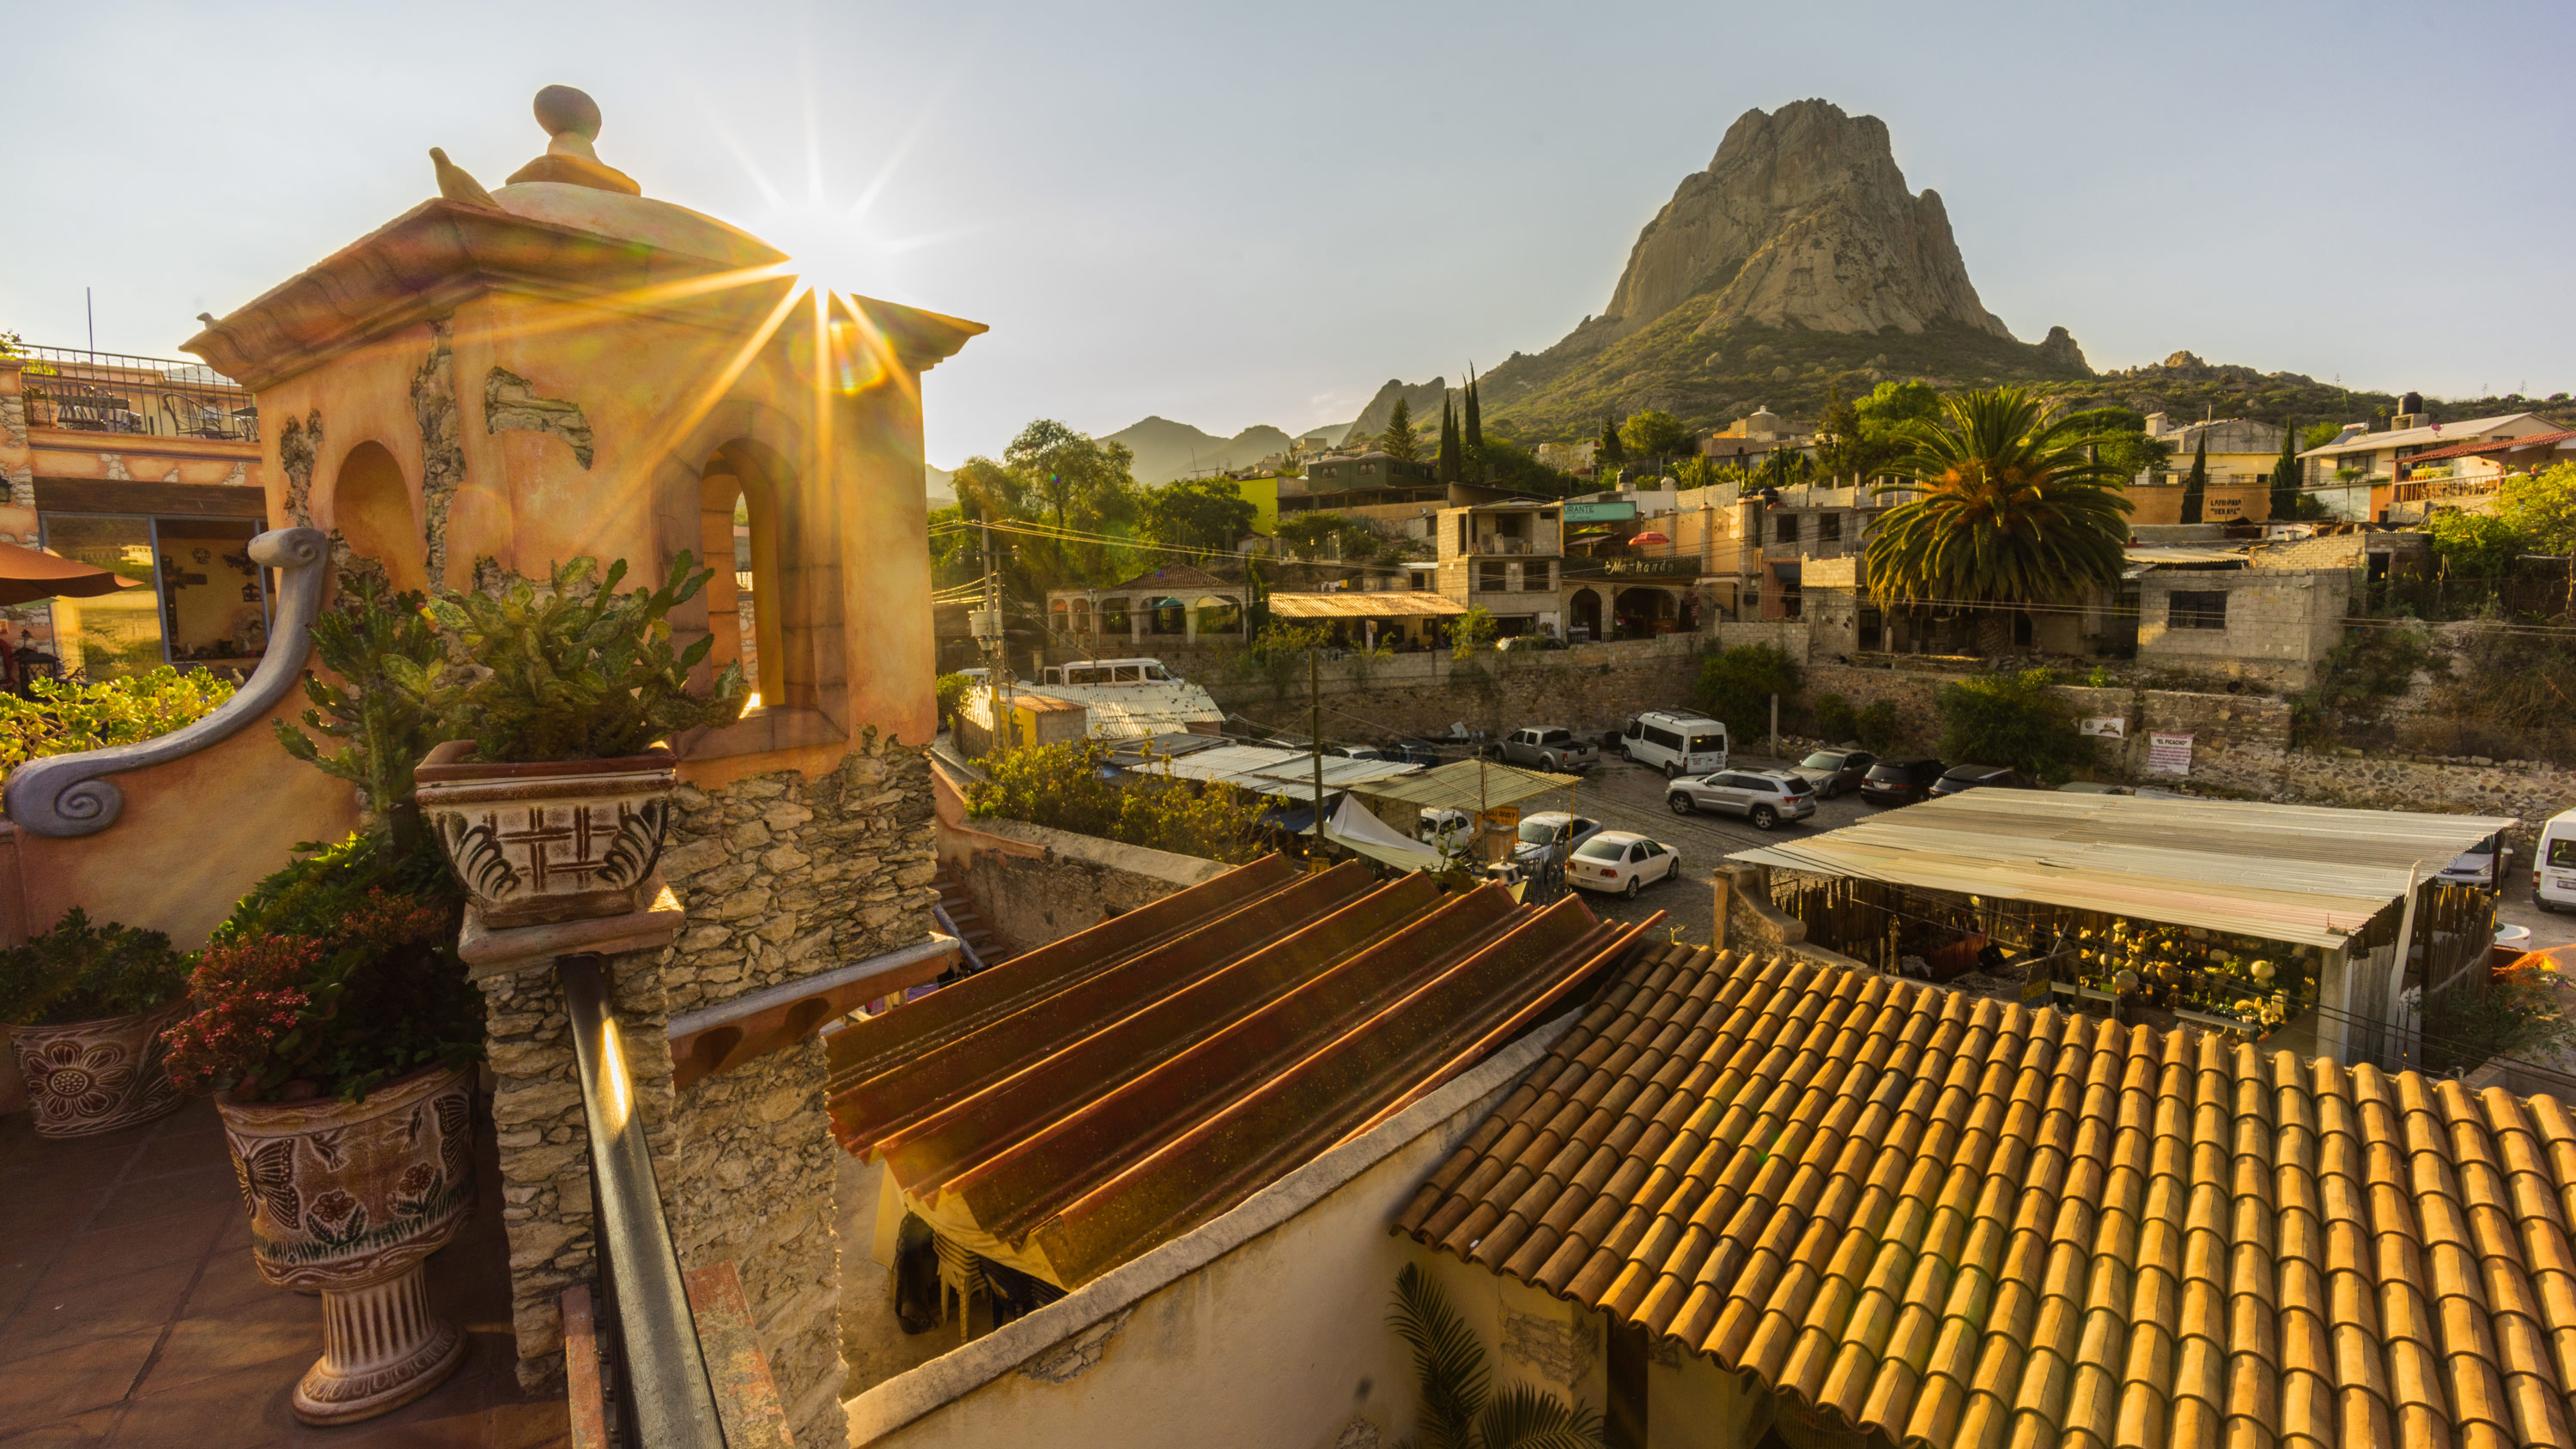 10 most beautiful small towns in Mexico   CNN Travel